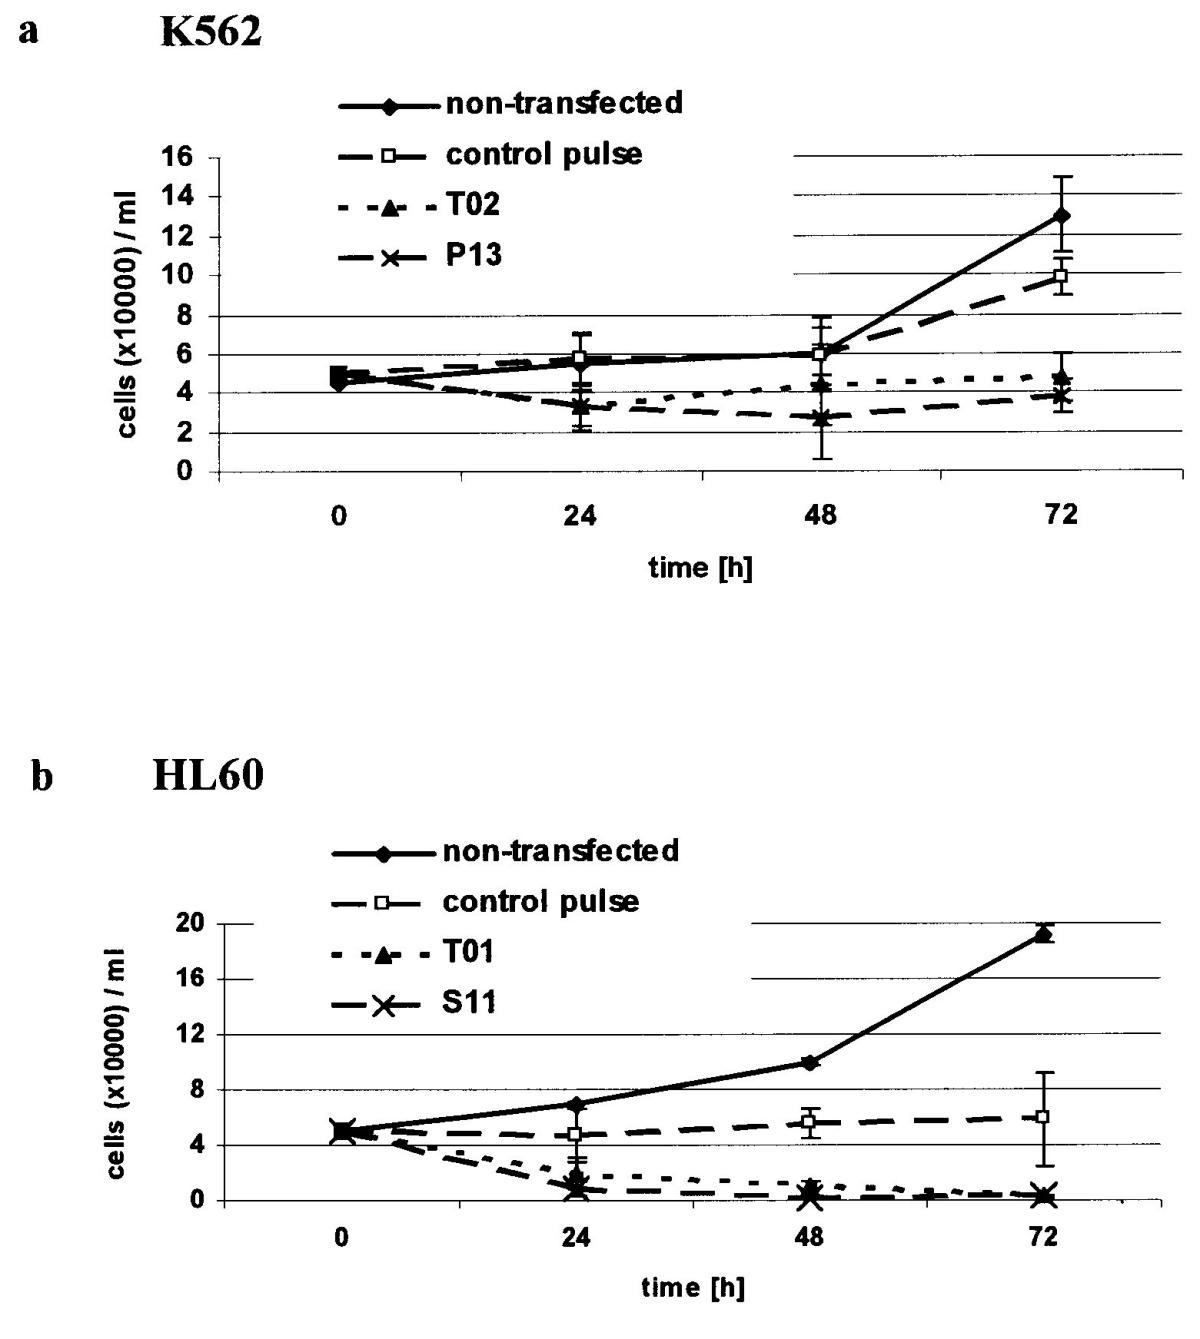 http://static-content.springer.com/image/art%3A10.1186%2F1479-0556-2-1/MediaObjects/12965_2003_Article_4_Fig4_HTML.jpg